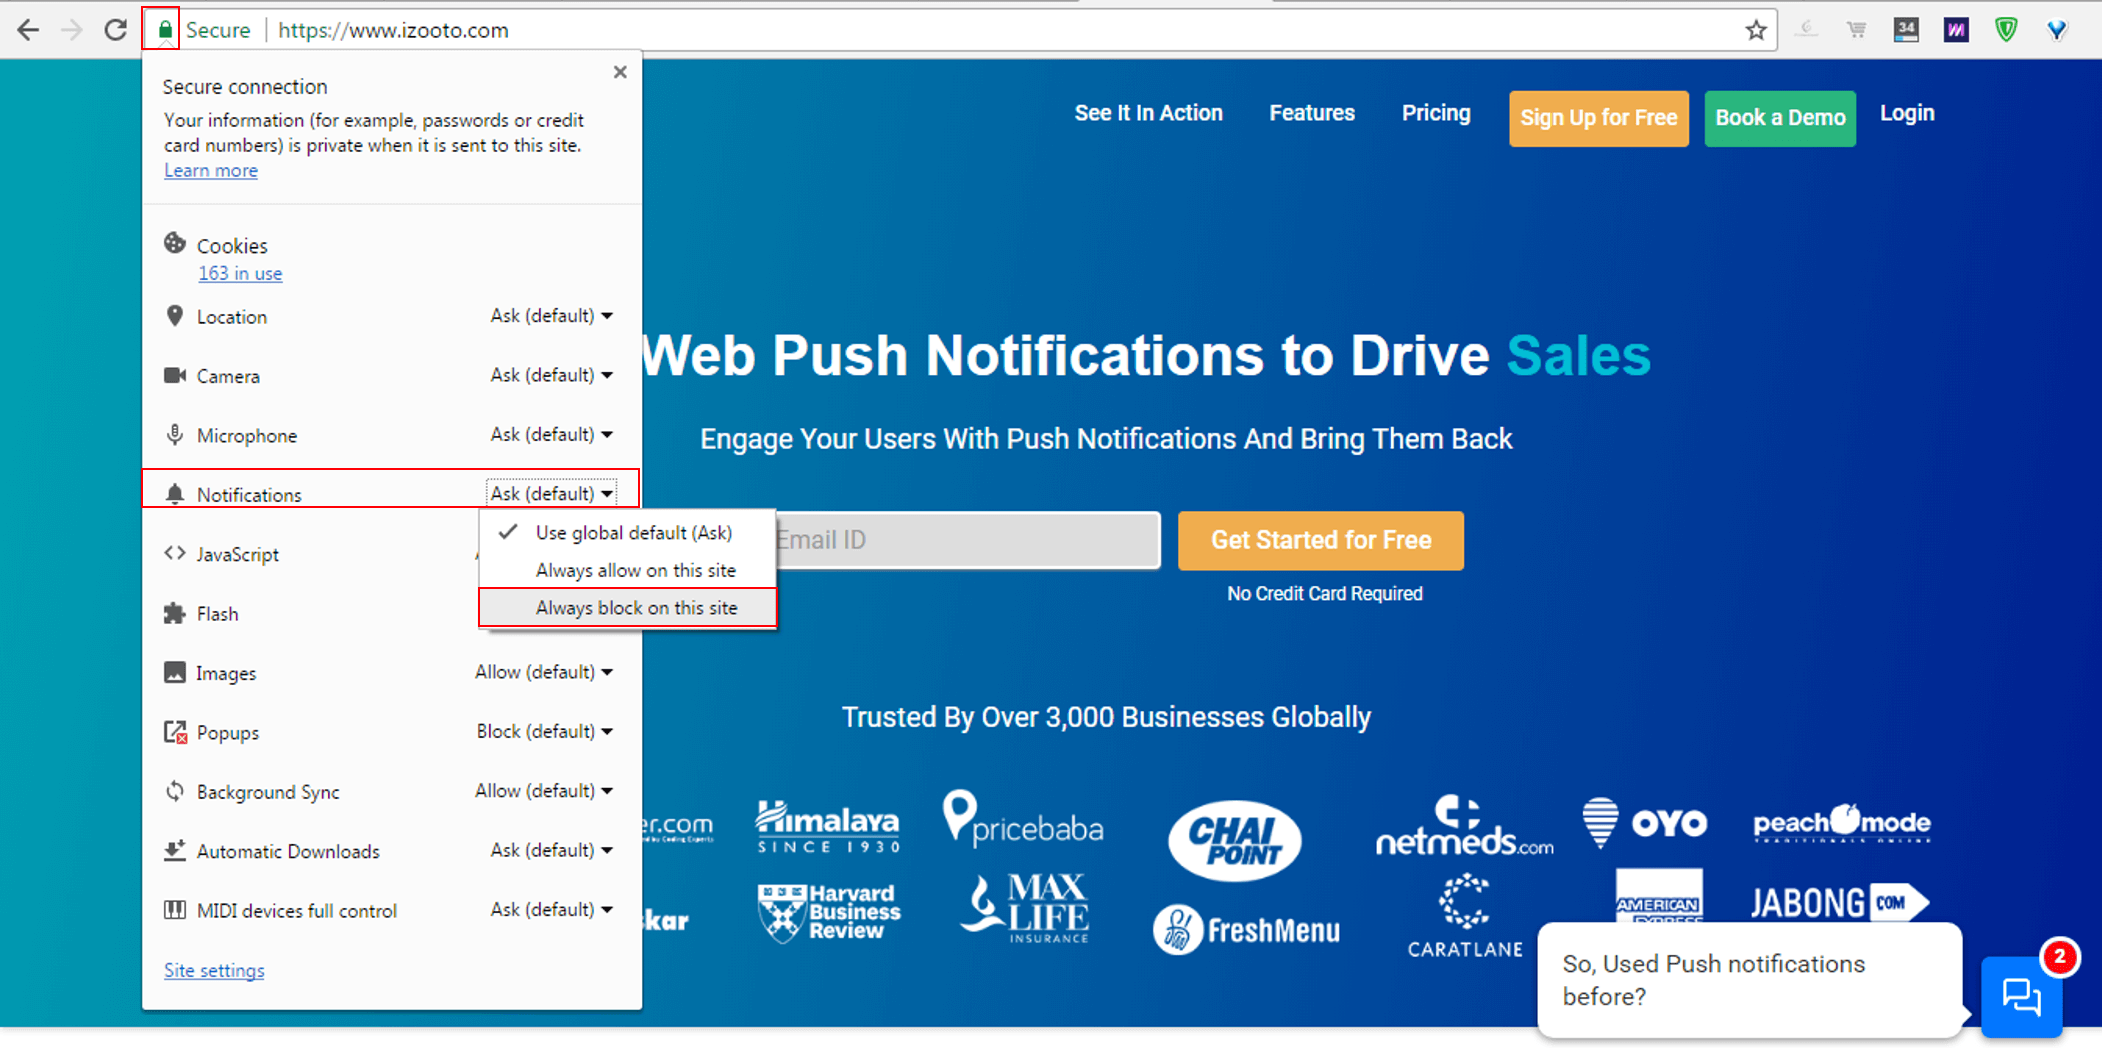 How to Unsubscribe from Browser Push Notifications Easily?